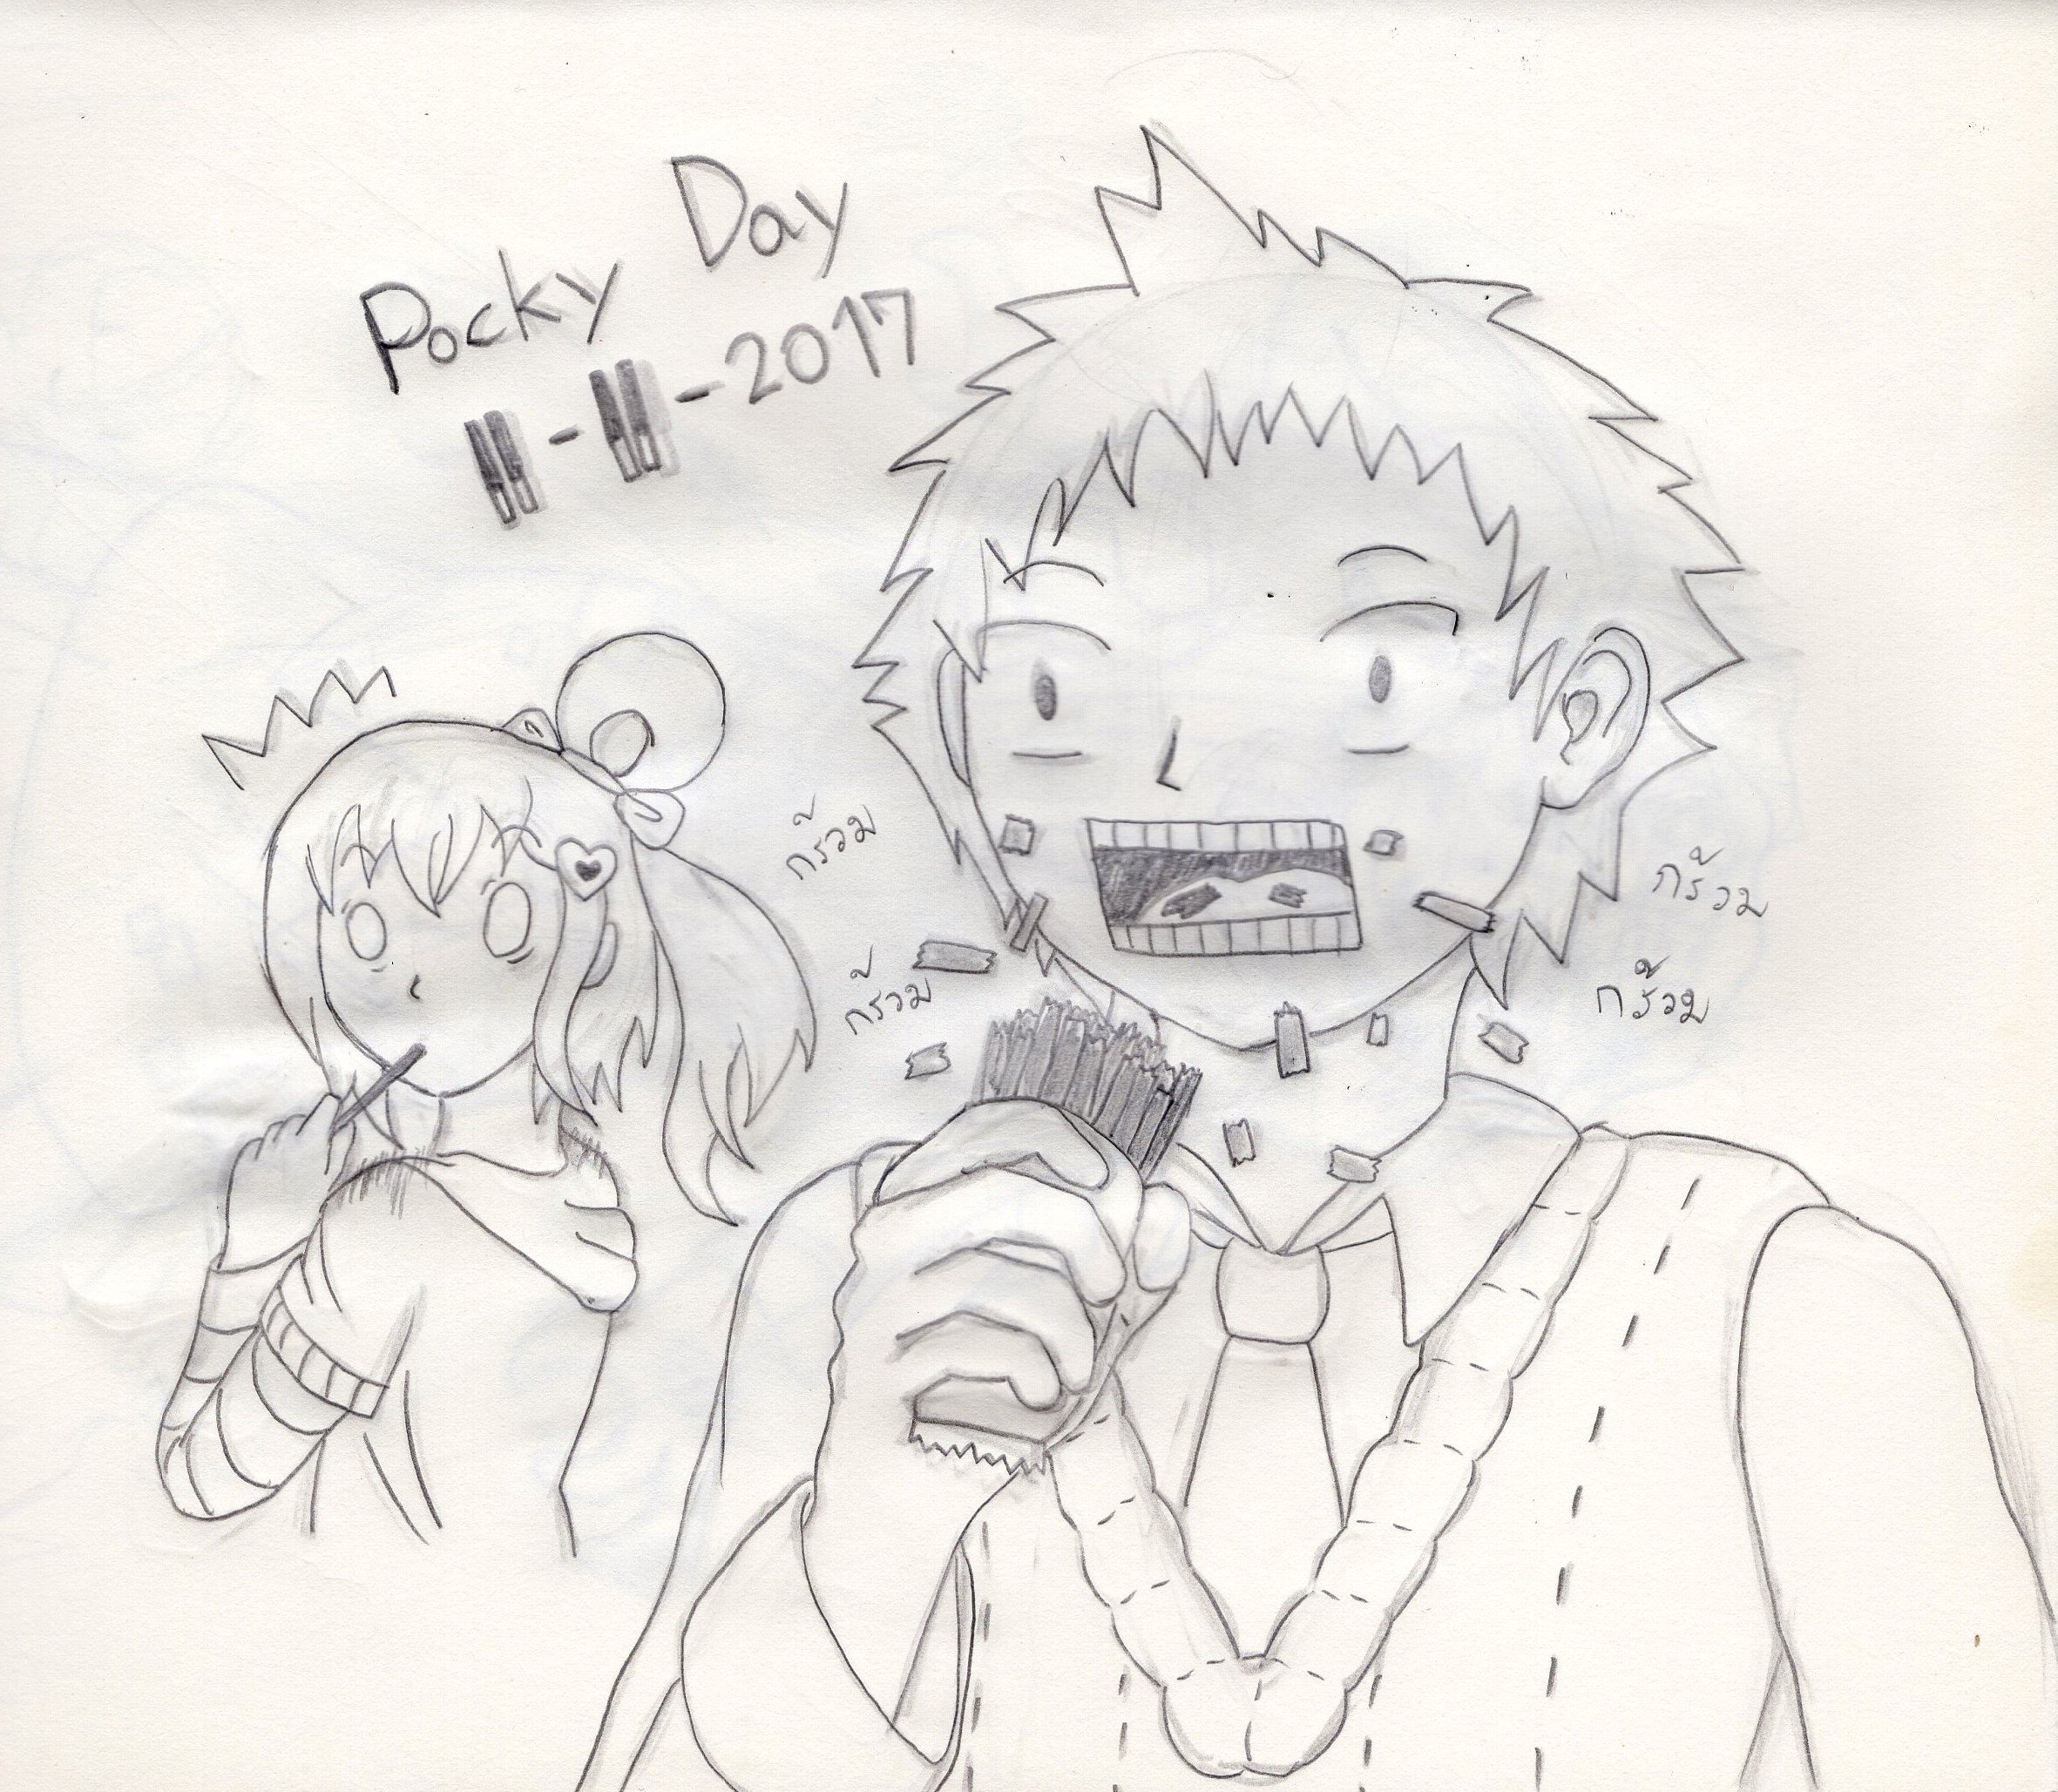 Doodle(มั้ง) - Pocky Day 2017